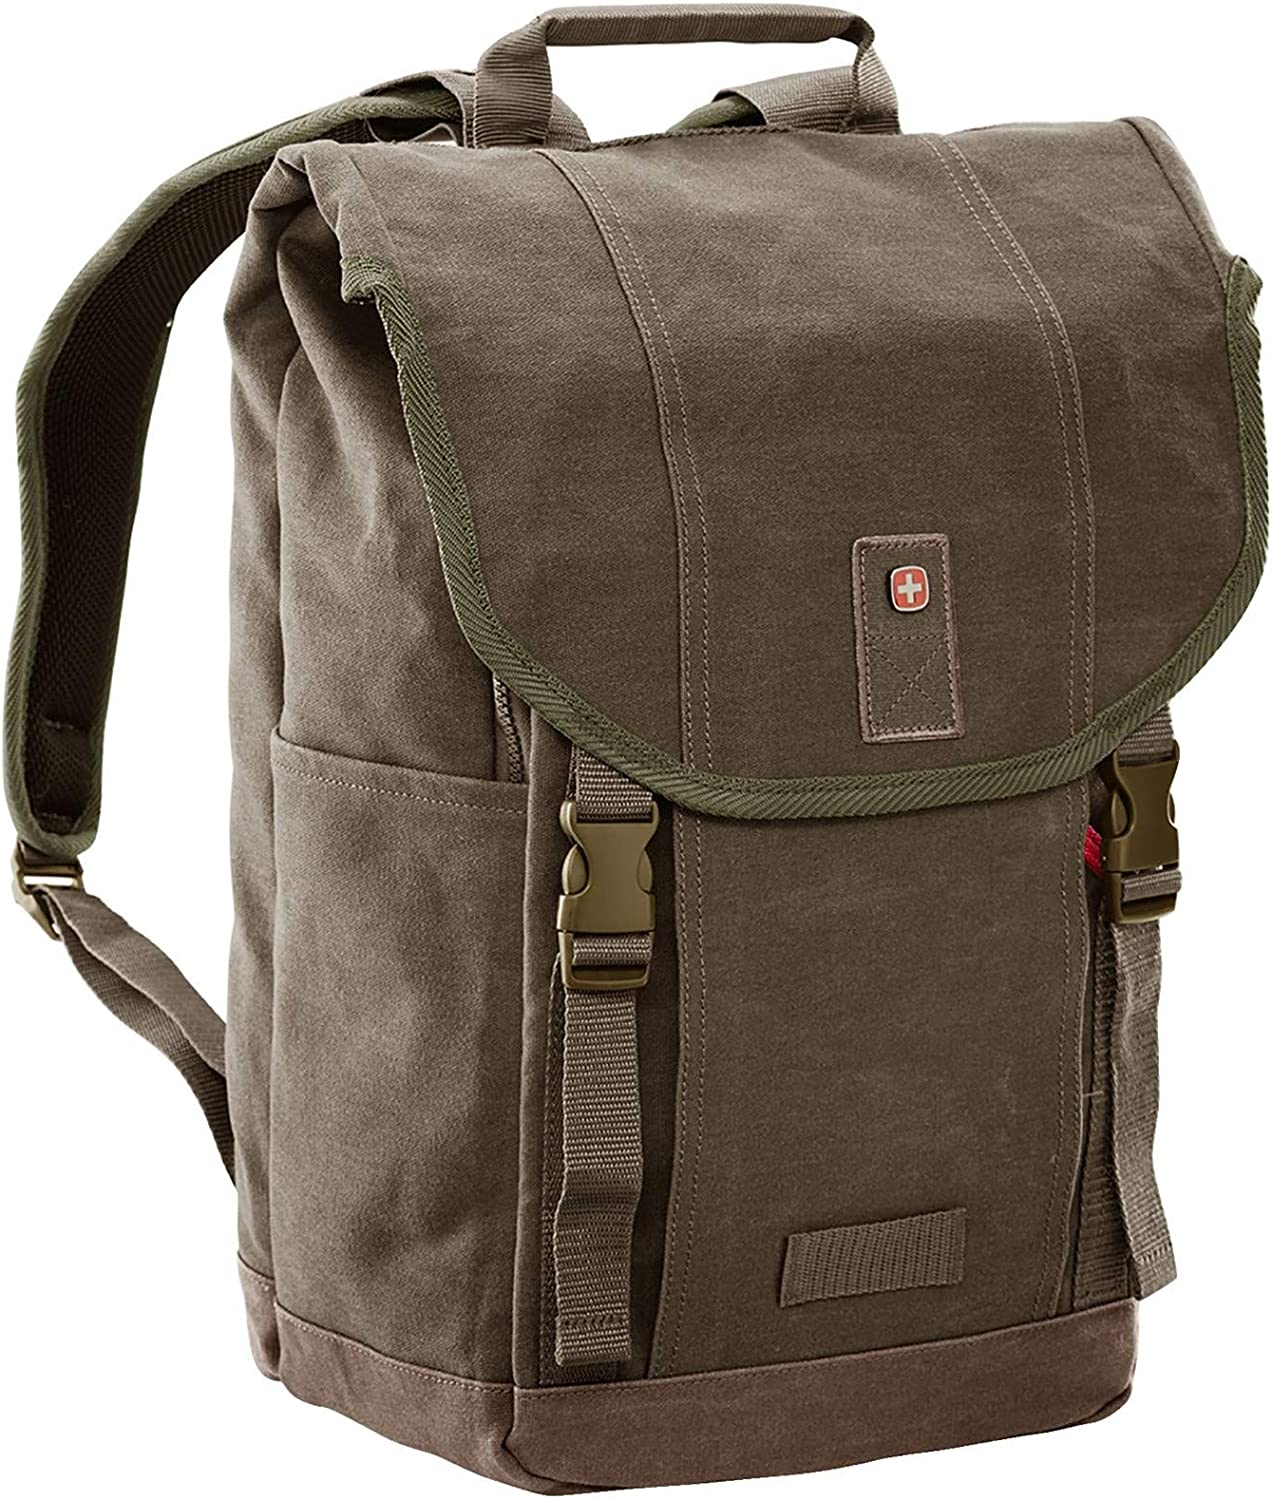 Wenger Foix 16'' Laptop Backpack with Tablet Pocket - Olive Green